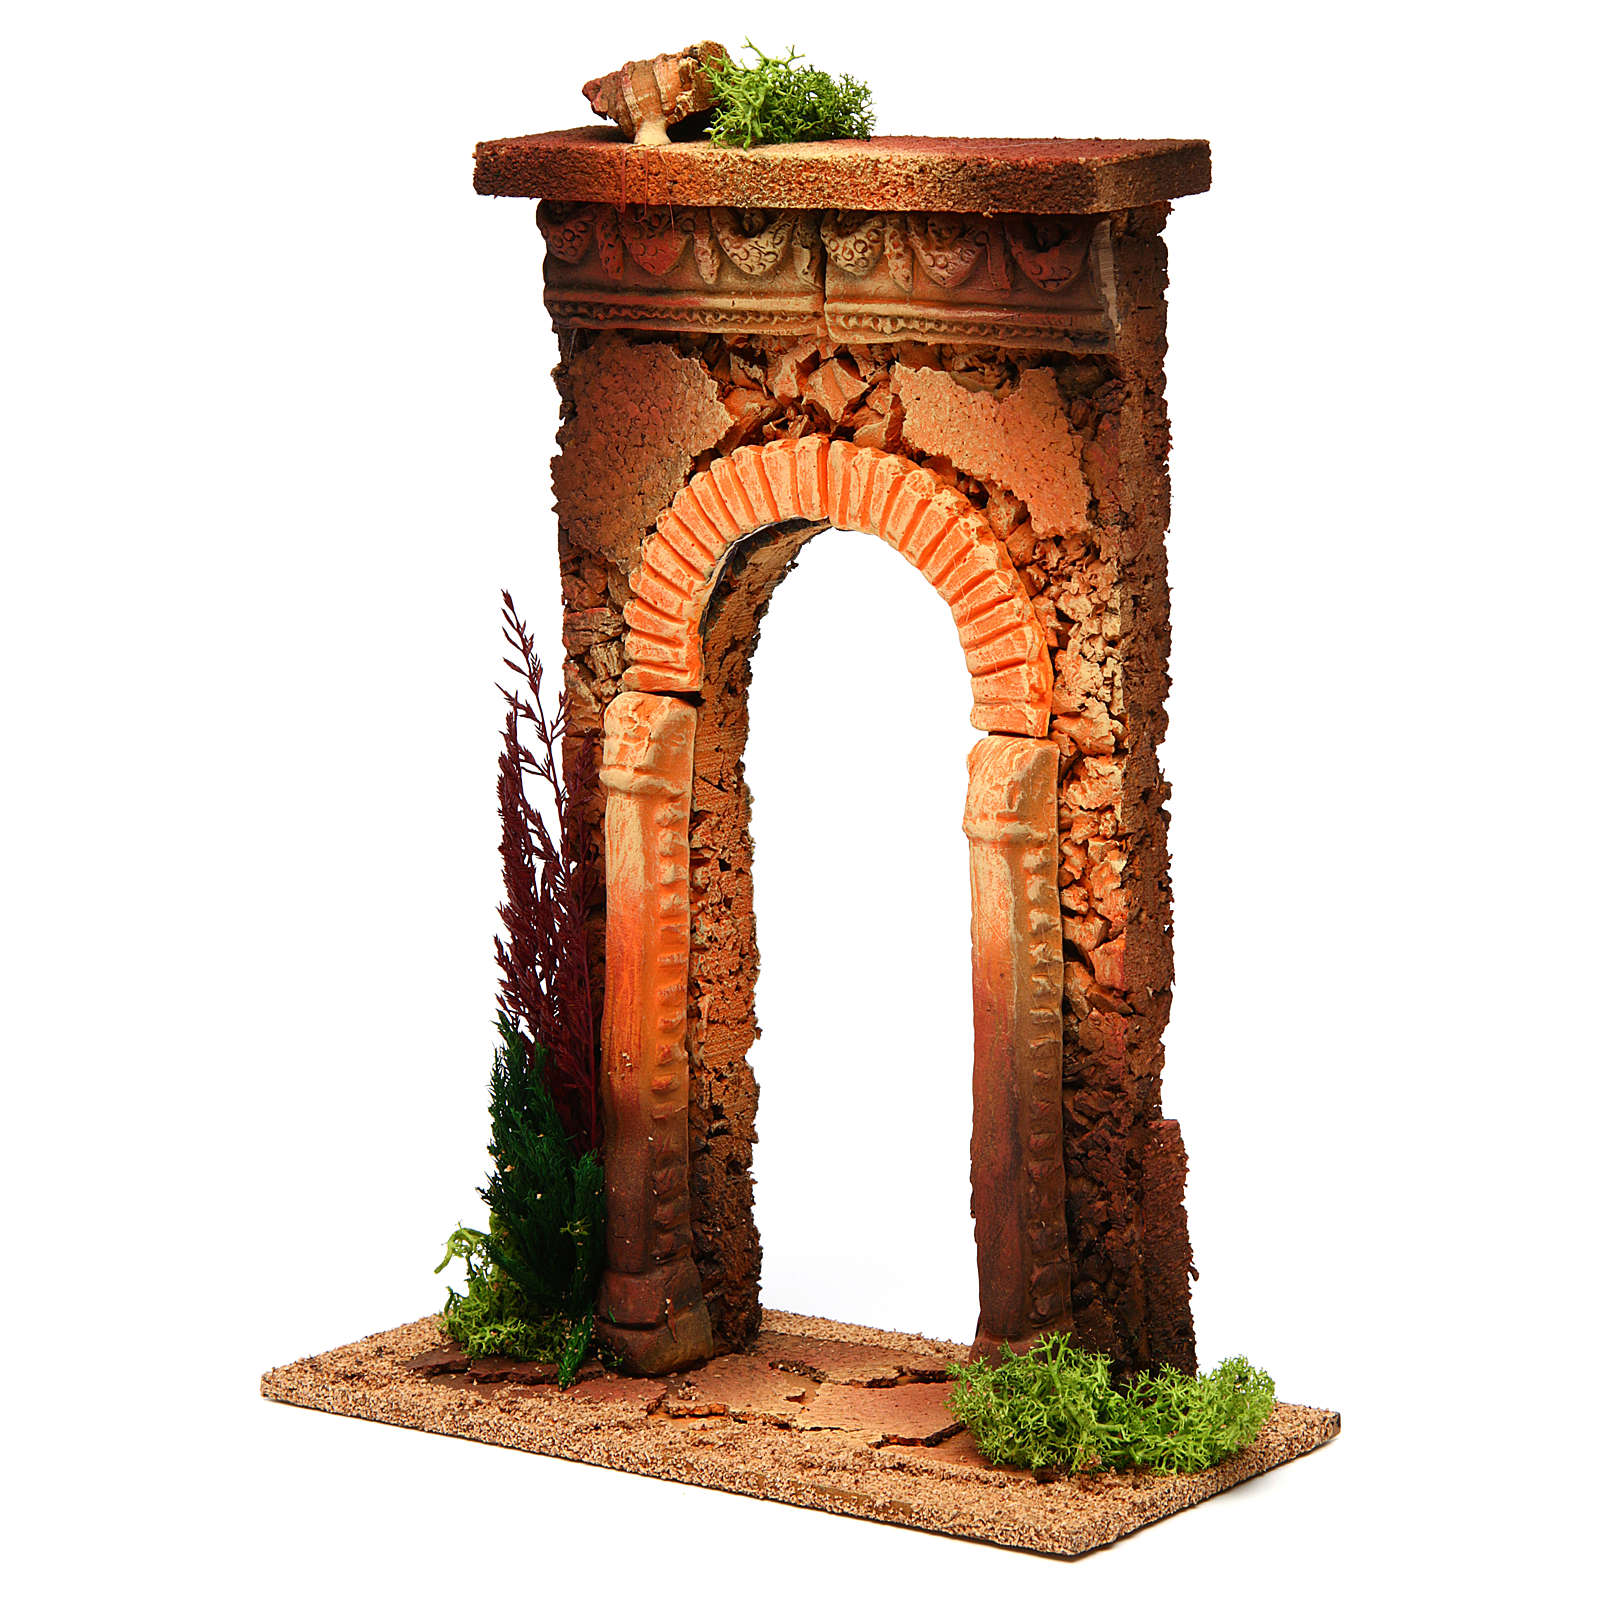 Archway with pillars and bricks for Nativity scene 4